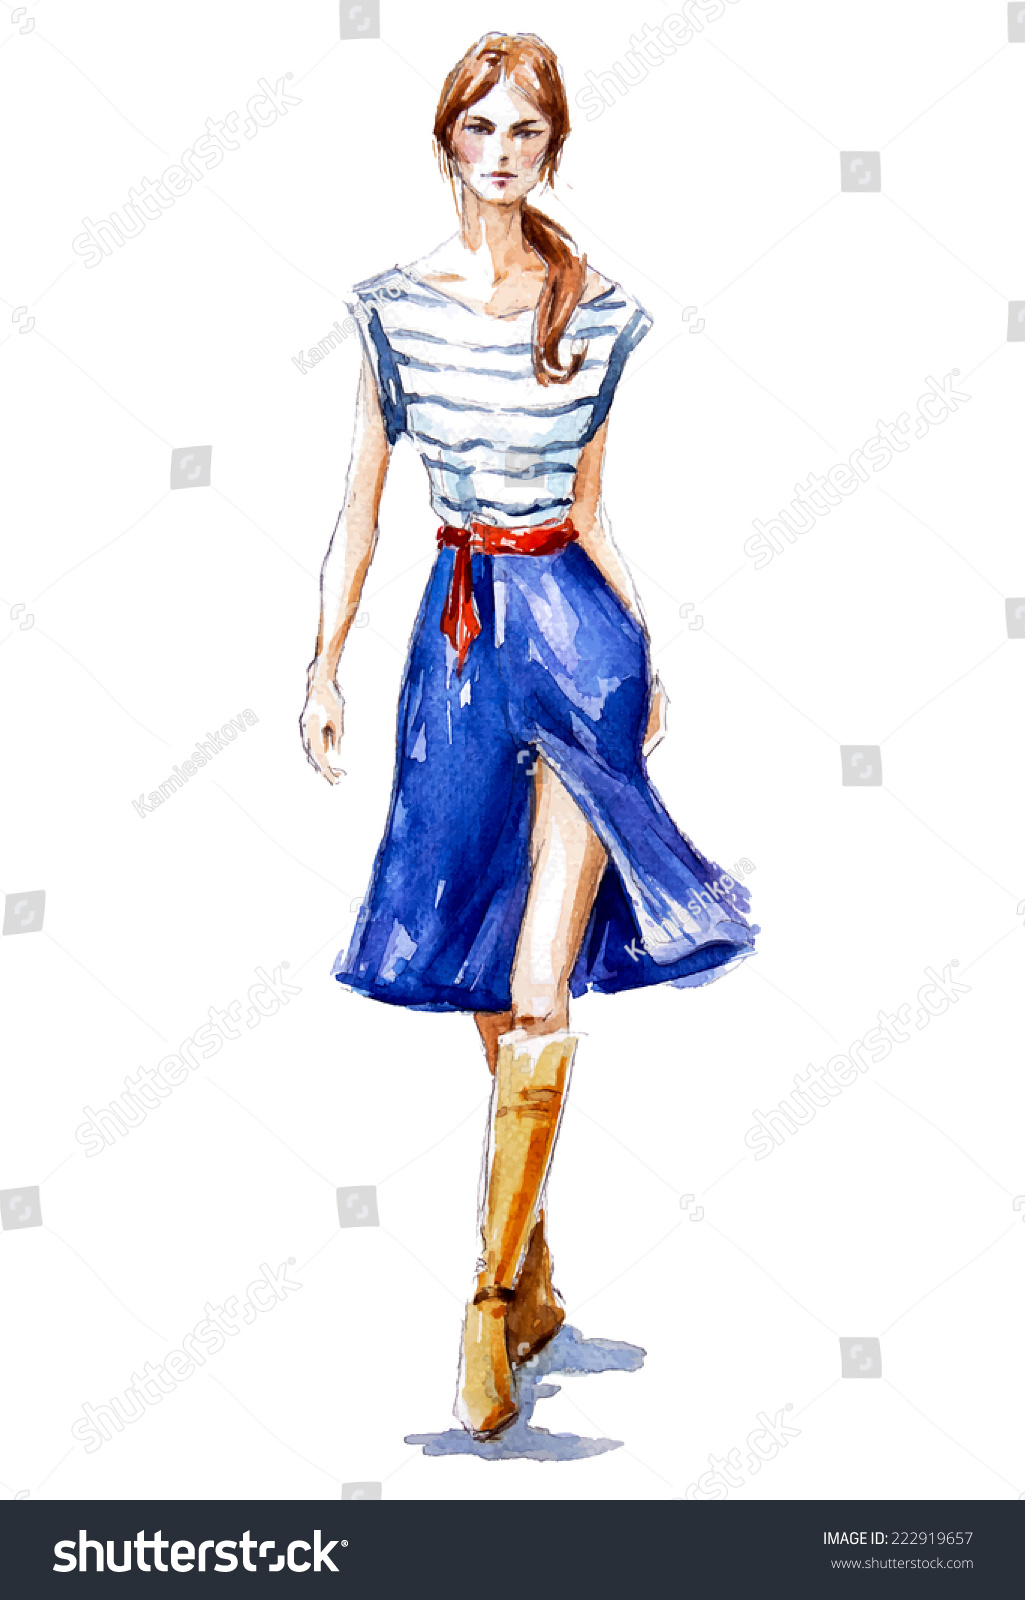 Street Fashion Girl Walking Summer Look Stock Vector